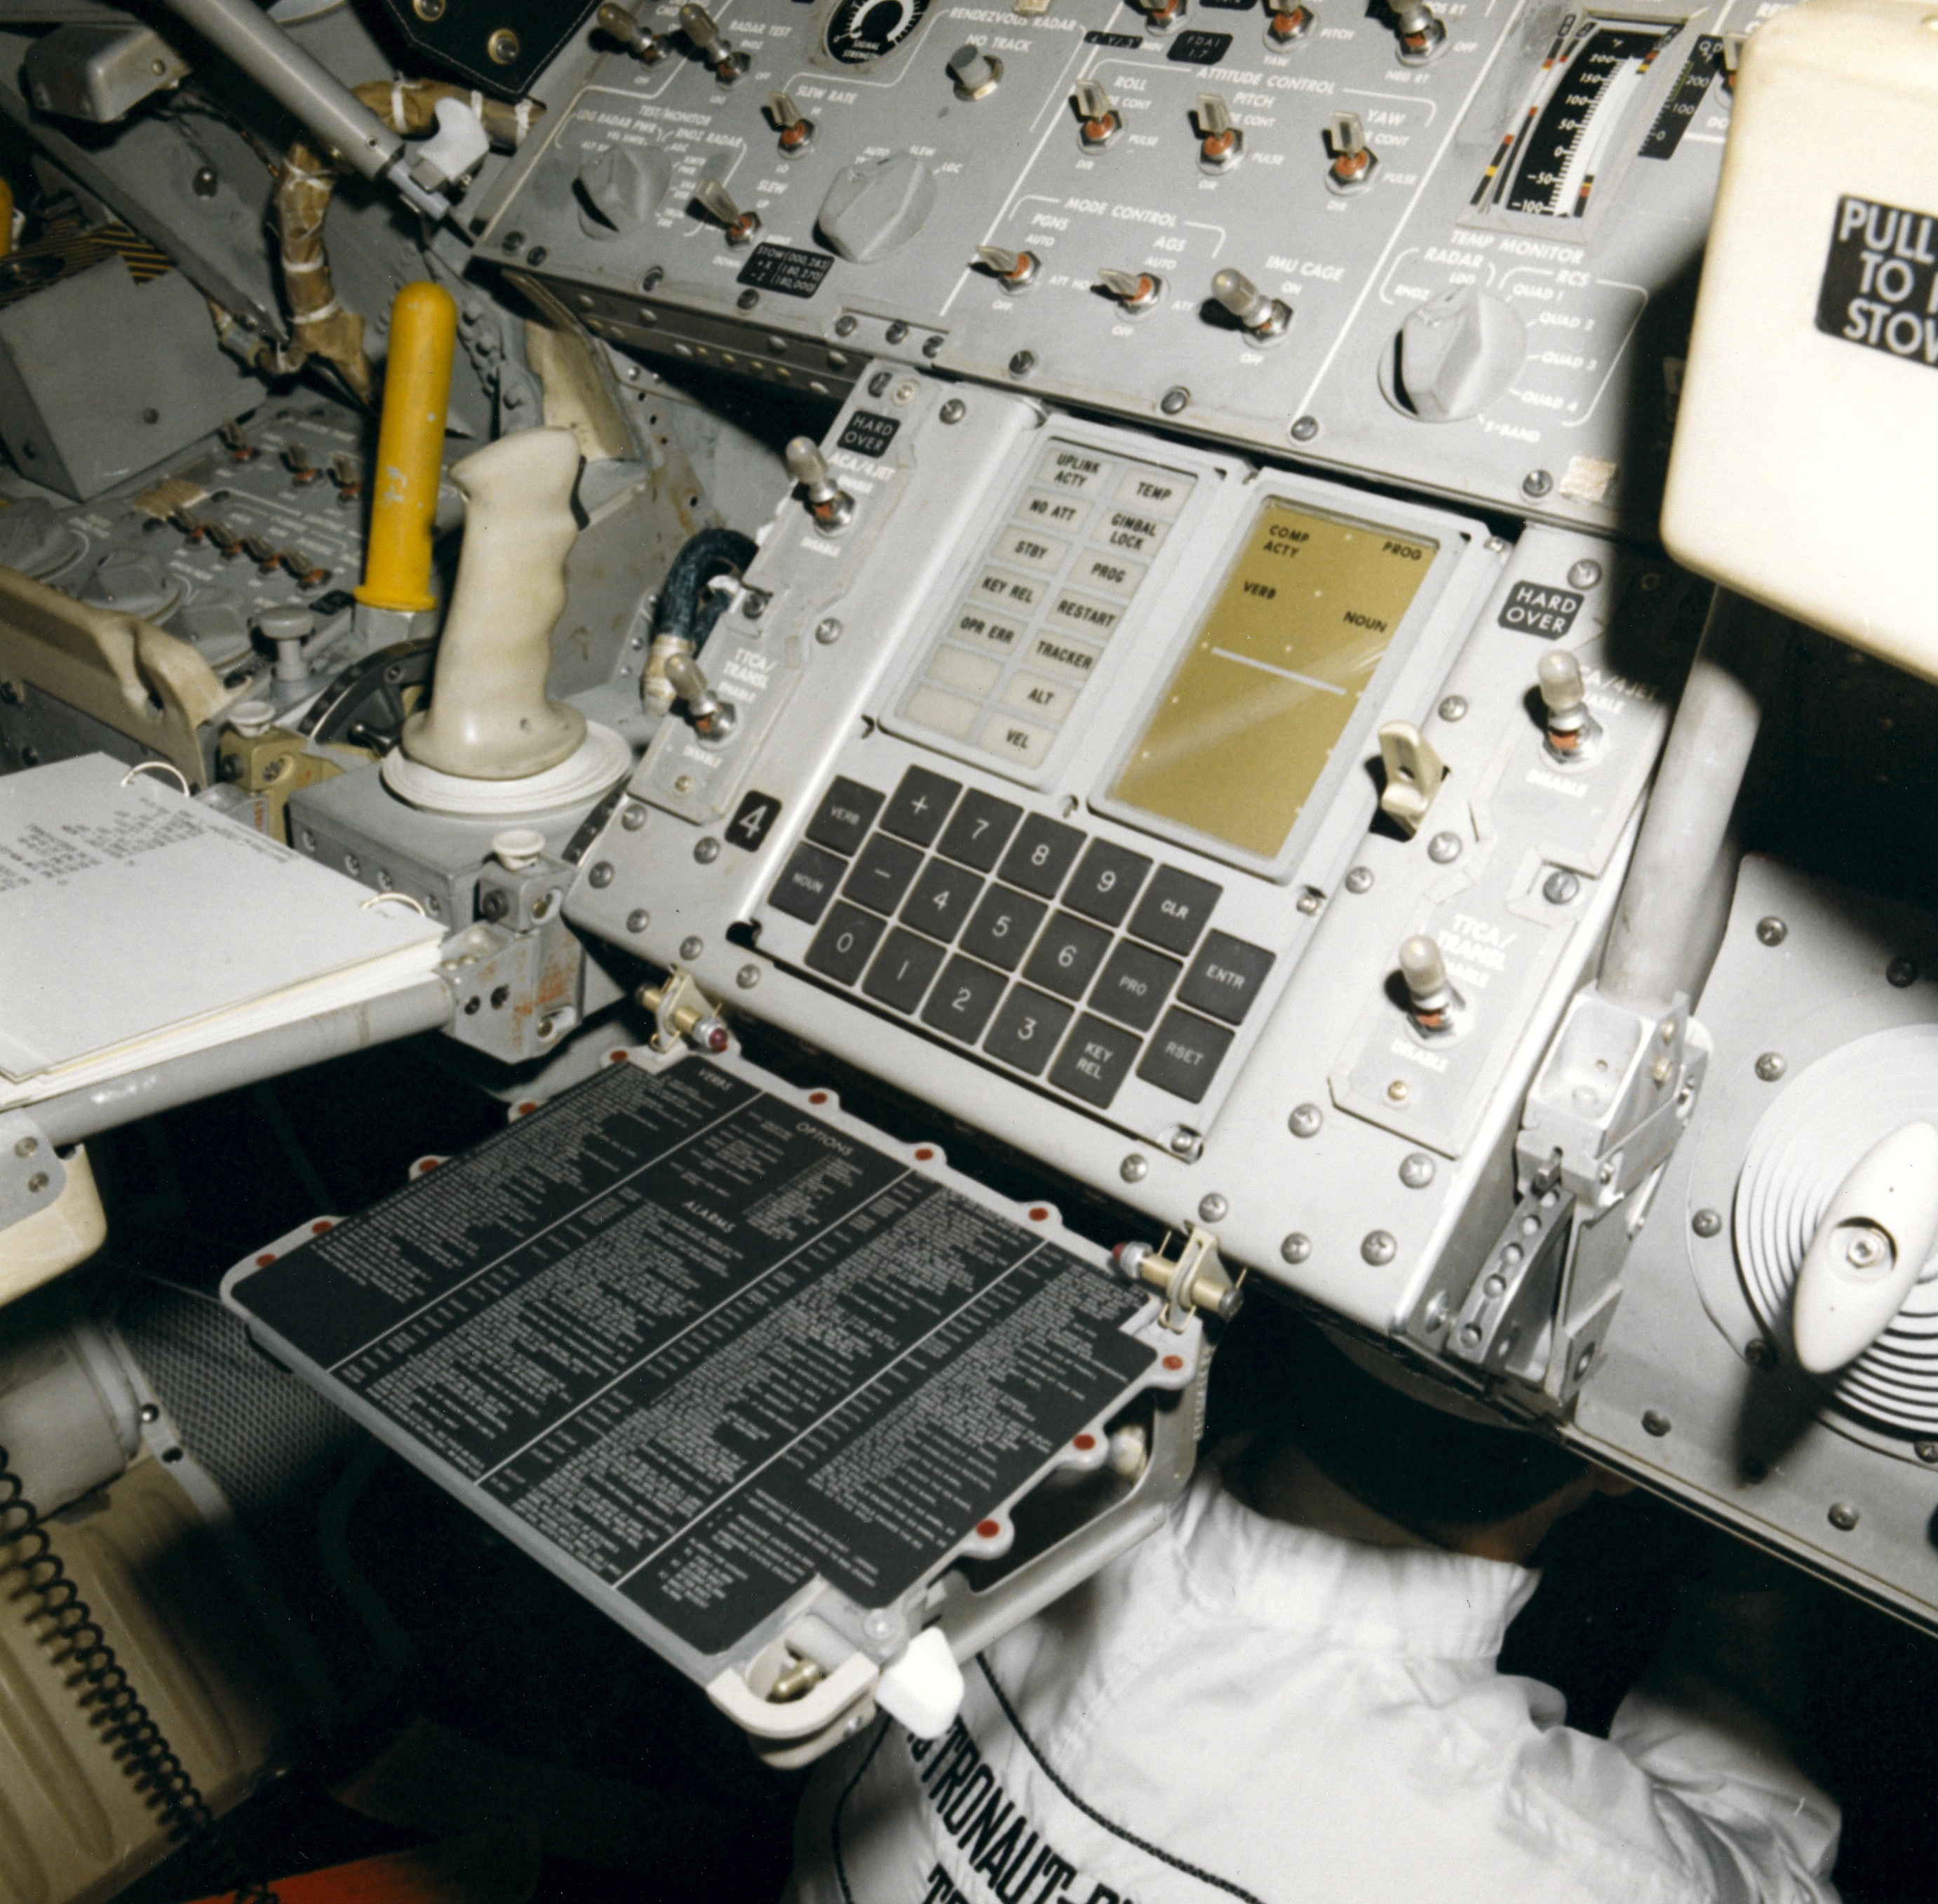 computers used in apollo space missions - photo #1